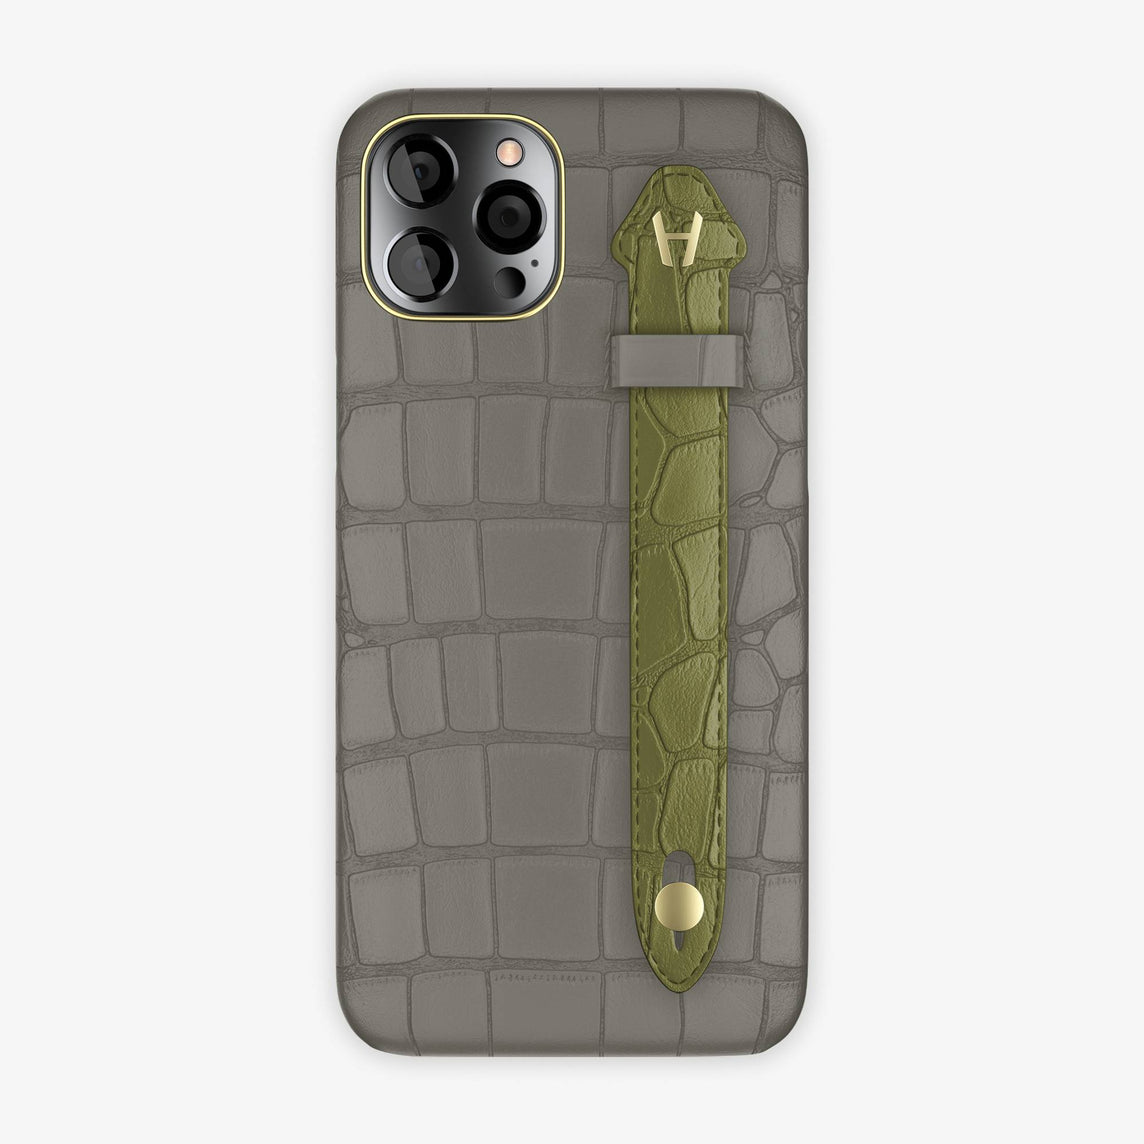 Alligator Side Finger Case iPhone 12 Pro Max | Pearl Grey/Khaki - Yellow Gold